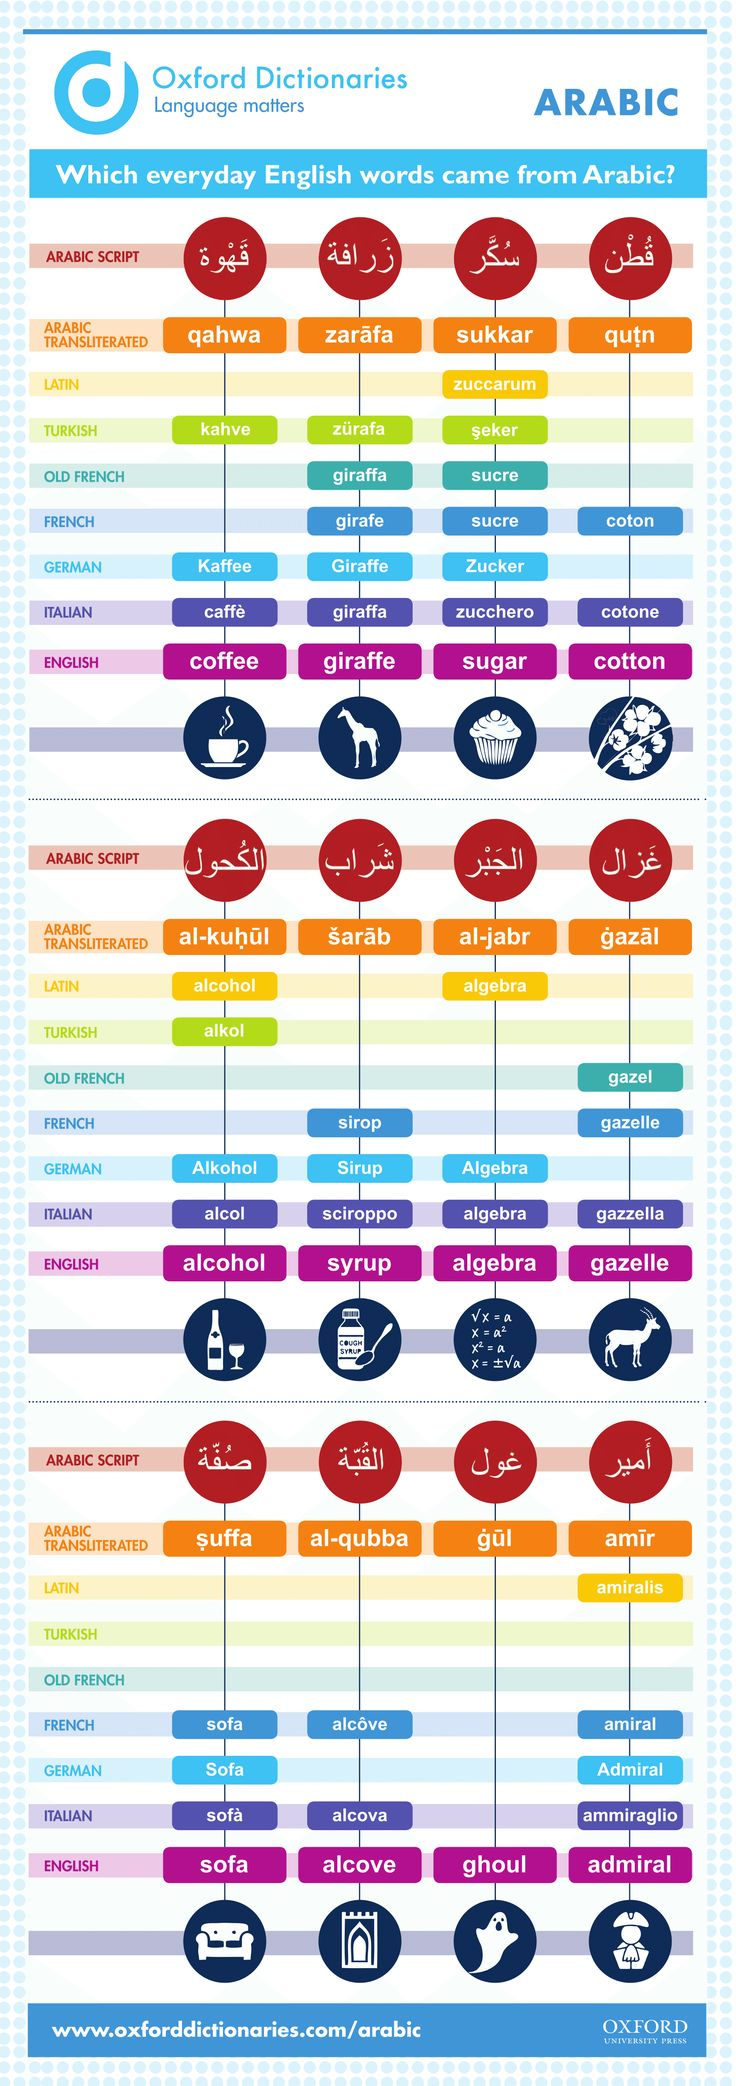 Which everday English words came from Arabic?